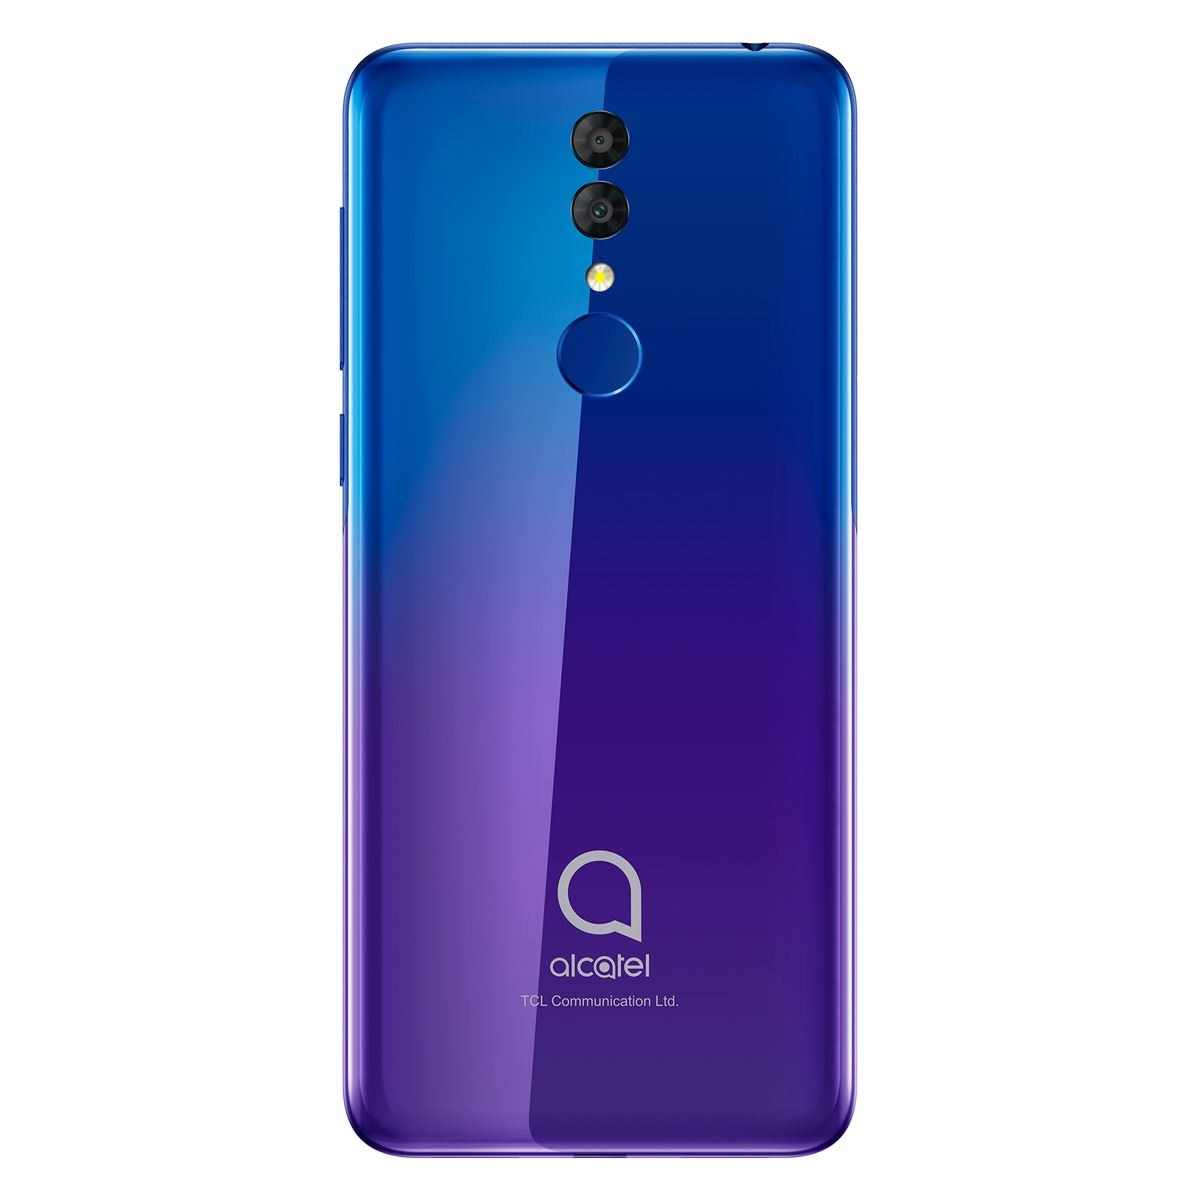 Celular Alcatel 5053A 3 Color Morado R9 (Telcel)